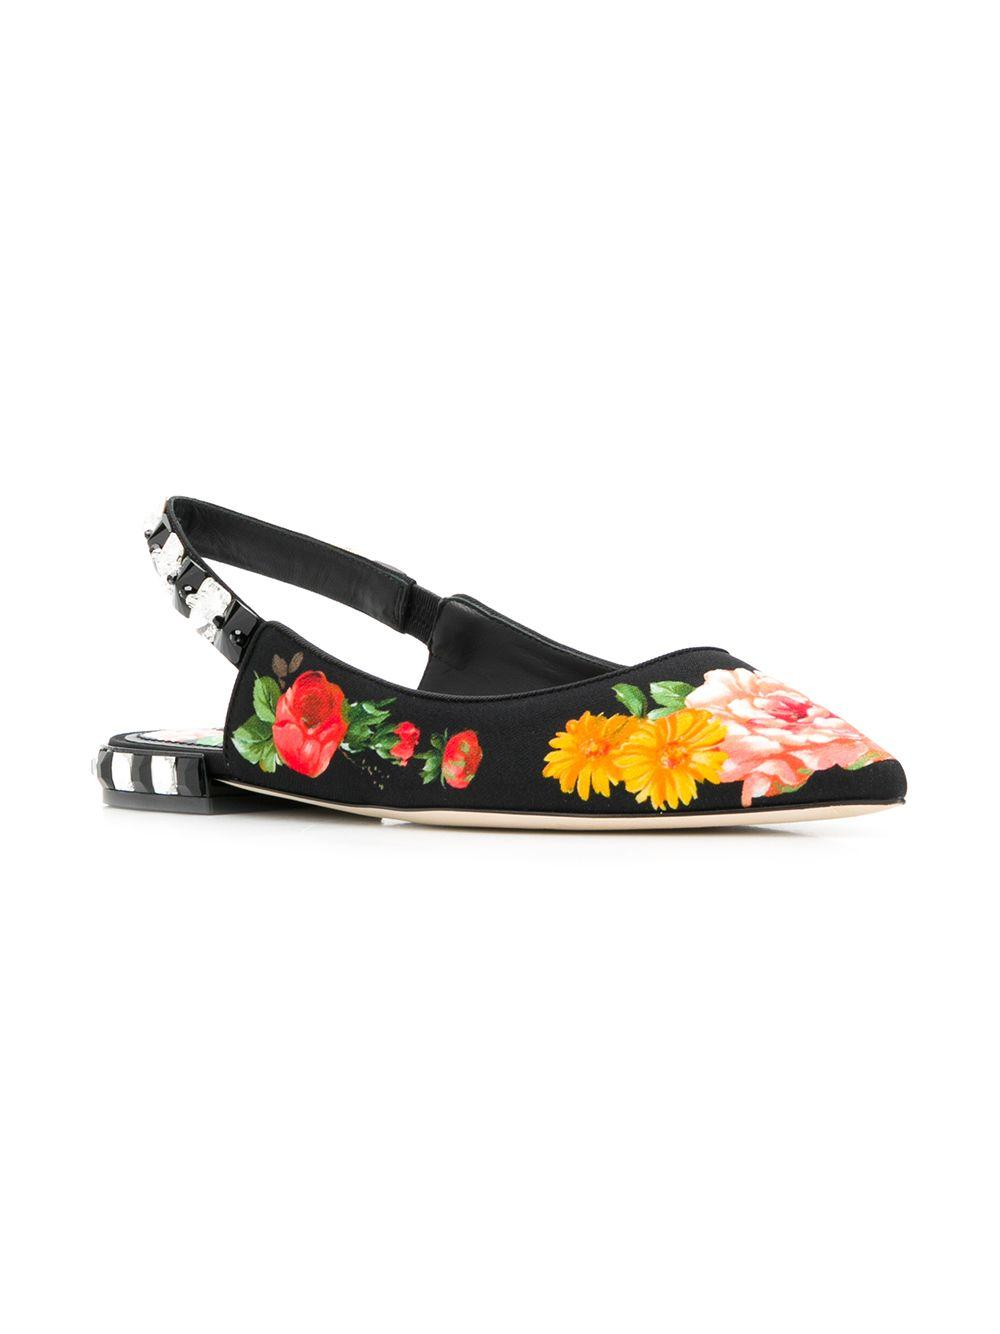 7336a41c2215 Lyst - Dolce   Gabbana Leather Pumps in Black - Save 7%